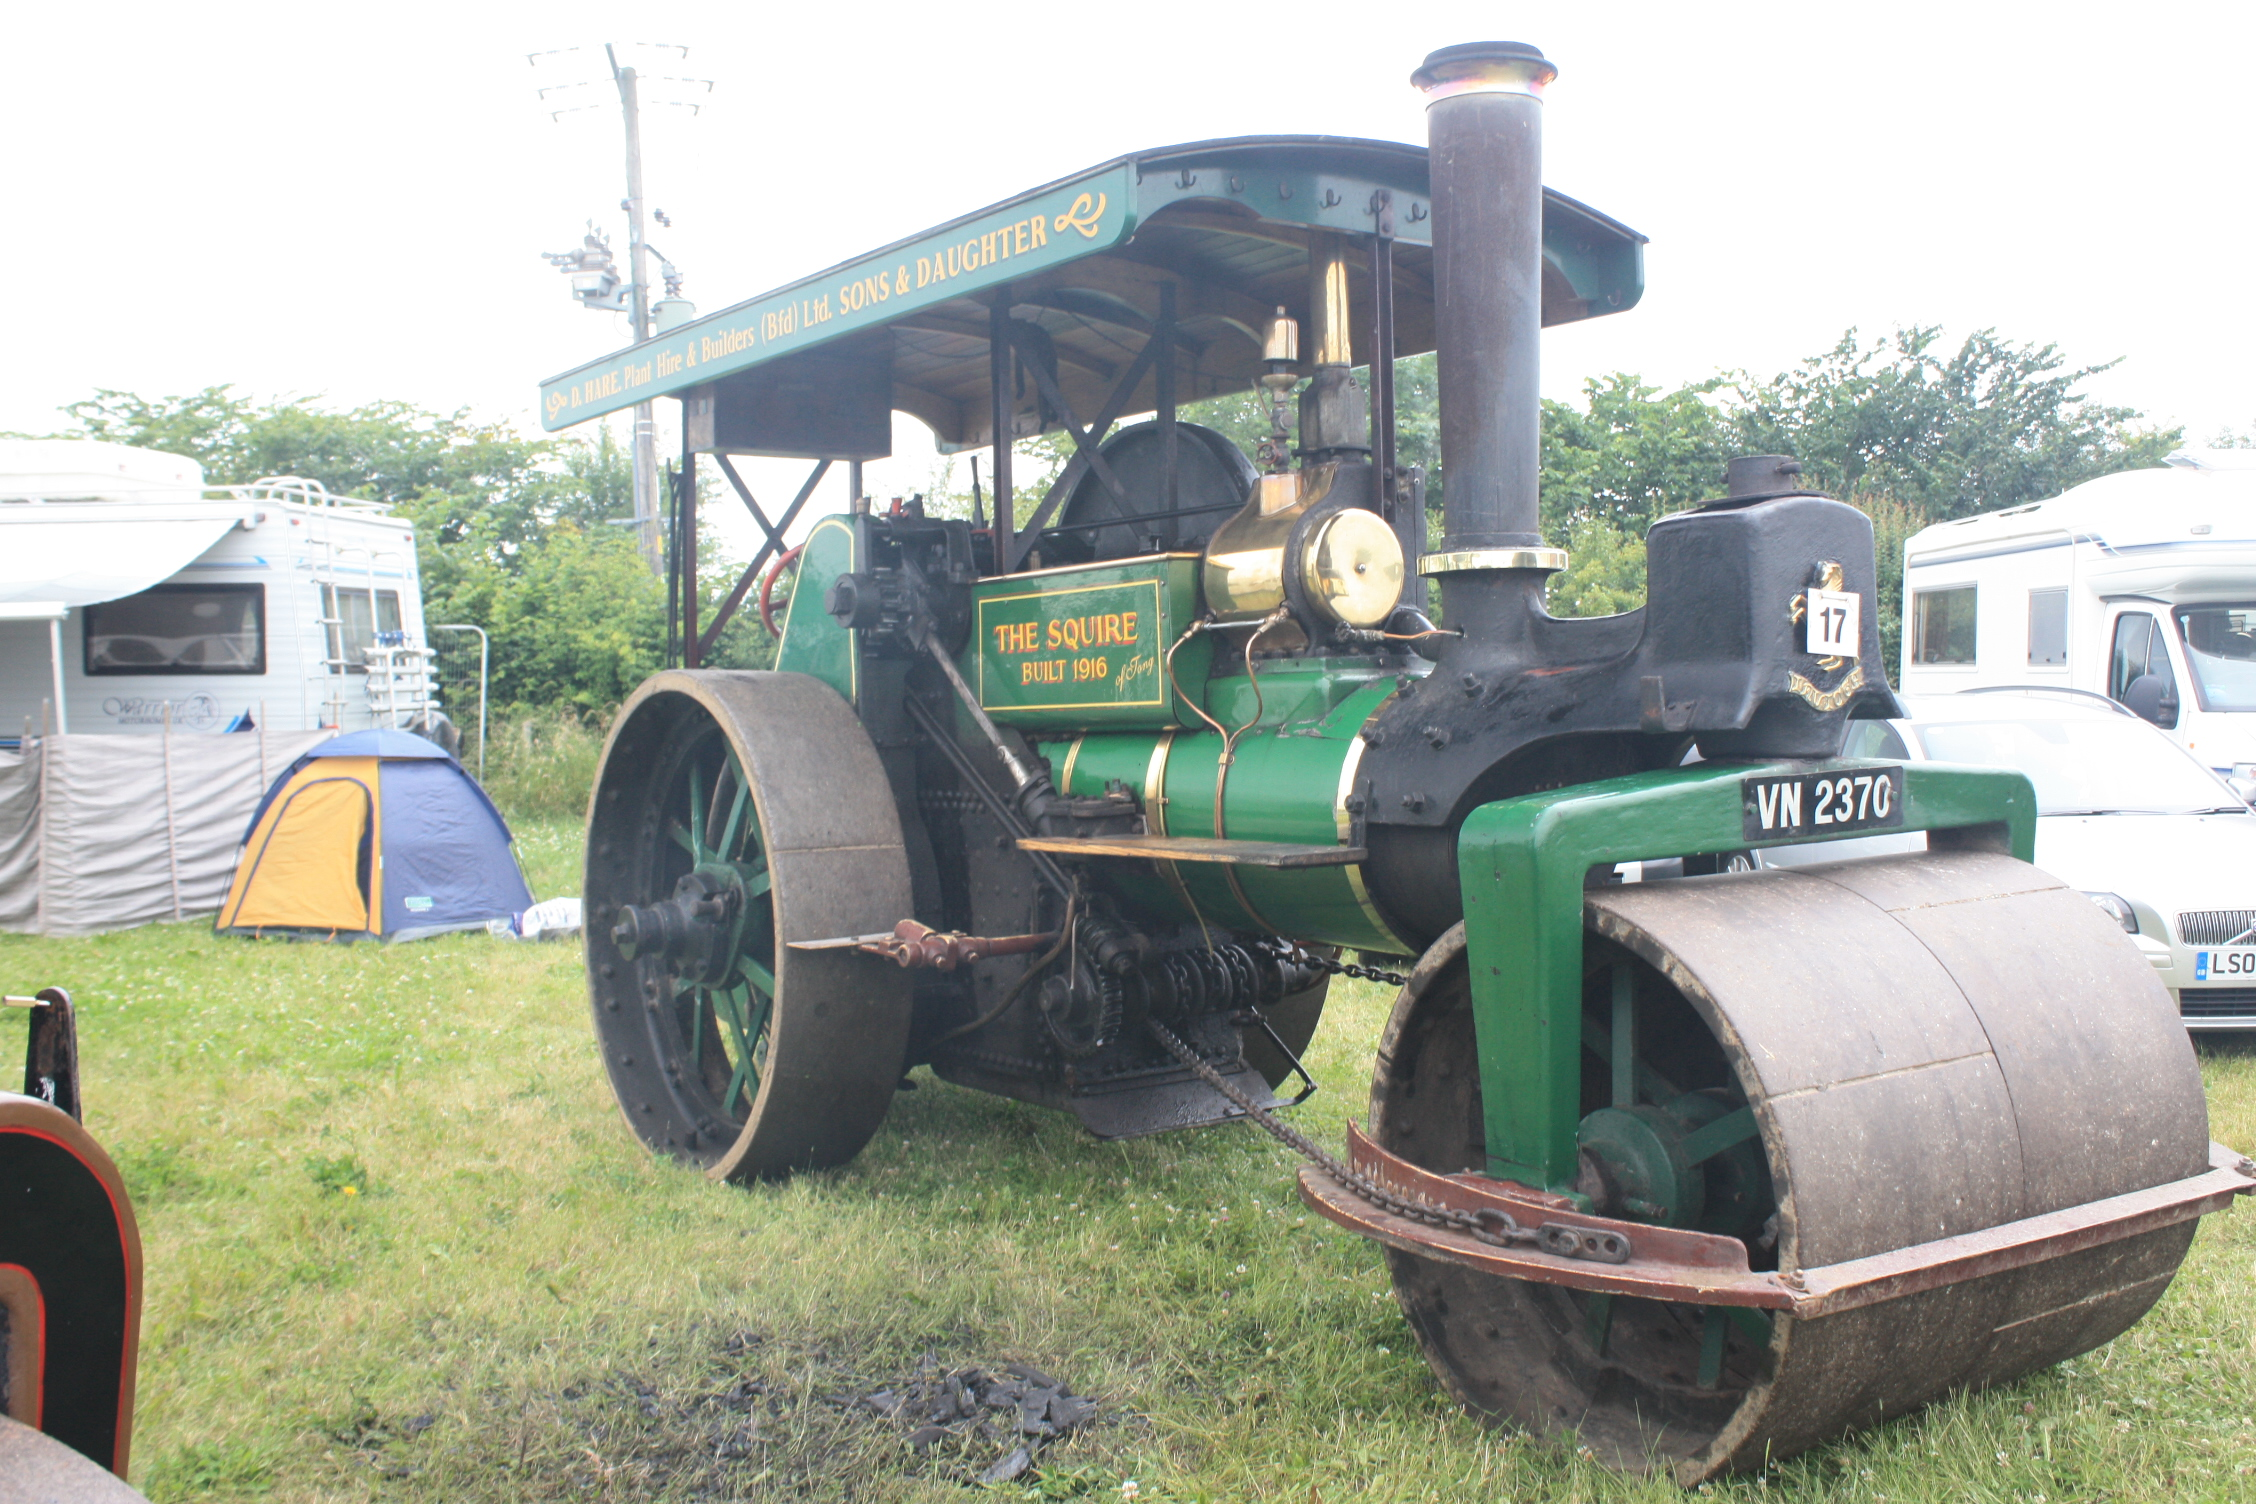 Aveling porter no 8754 tractor construction plant wiki the classic vehicle and - Porter international wiki ...